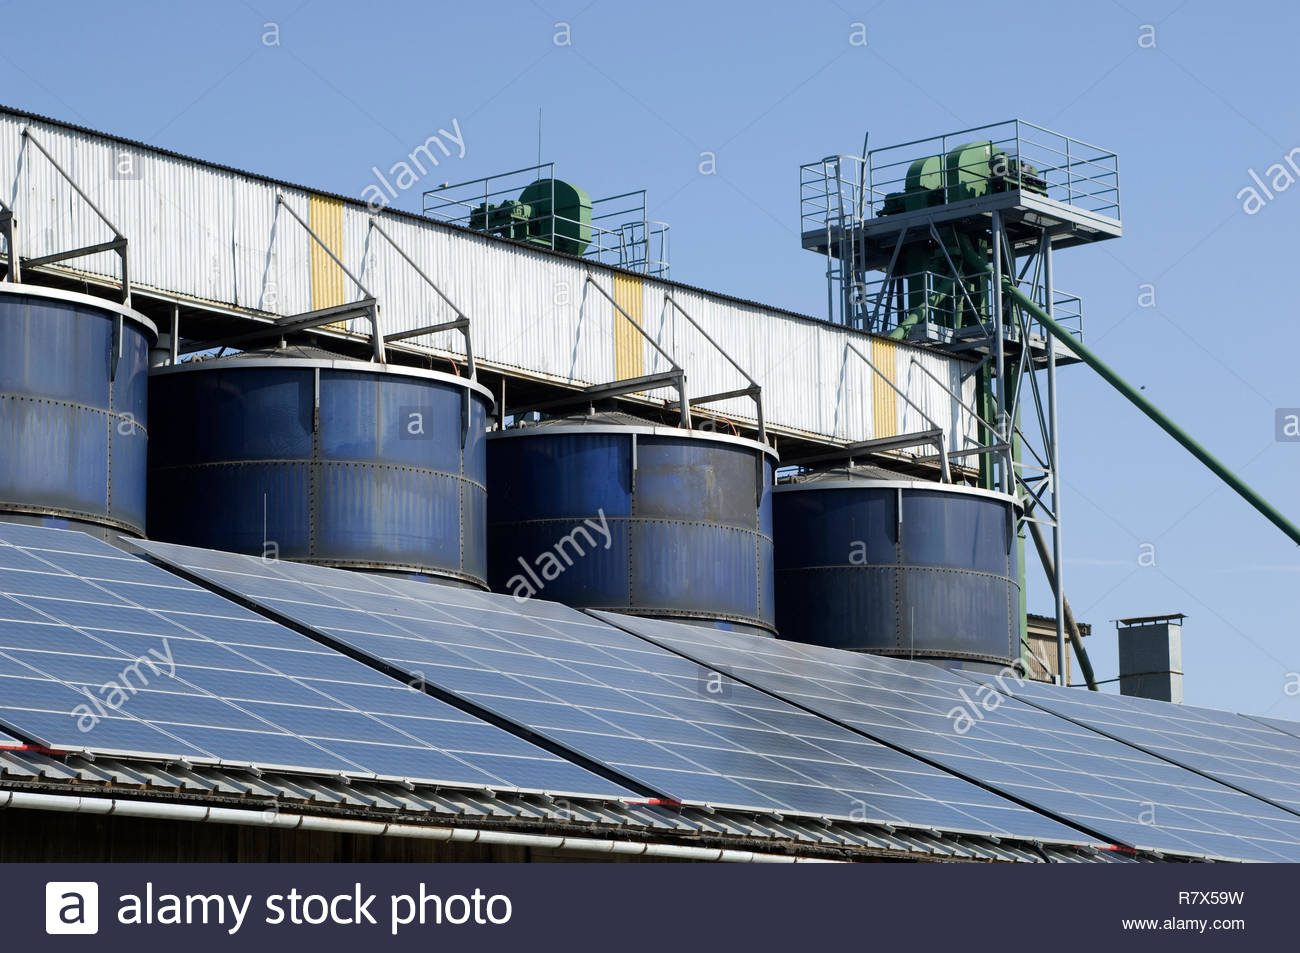 Silage towers with sun panels on the roof Stock Photo